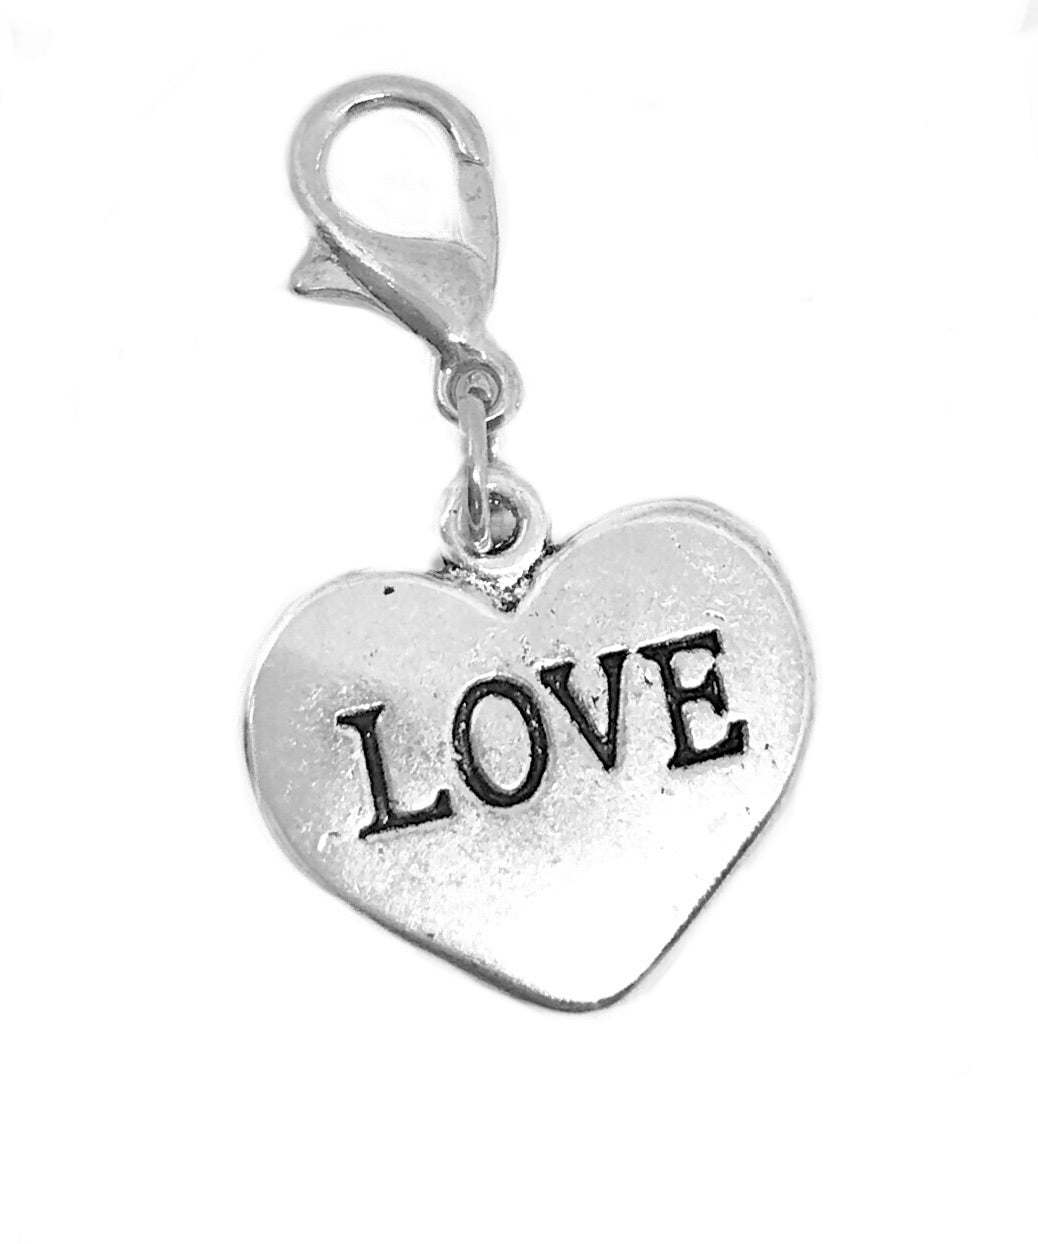 LOVE dangle charm